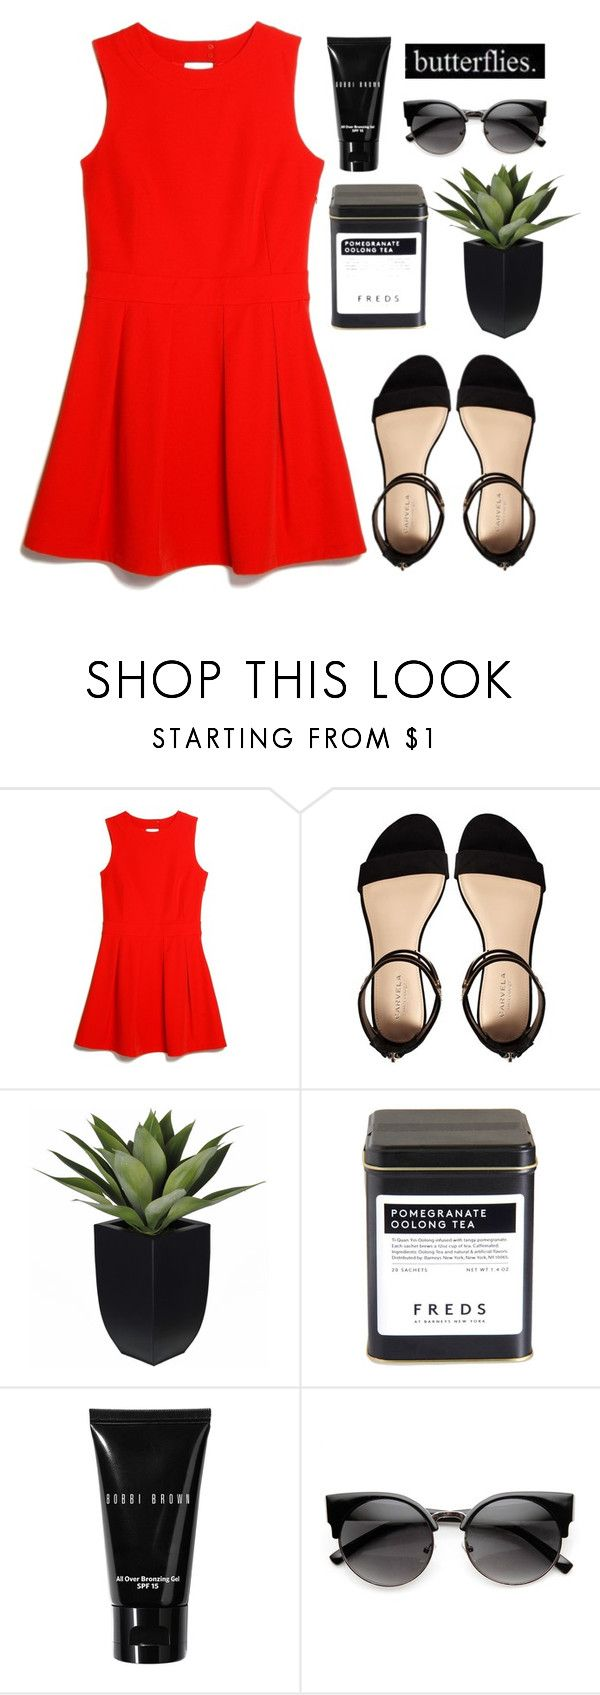 """spain"" by annamalana ❤ liked on Polyvore featuring MANGO, Carvela, FREDS at Barneys New York, Bobbi Brown Cosmetics and ZeroUV"